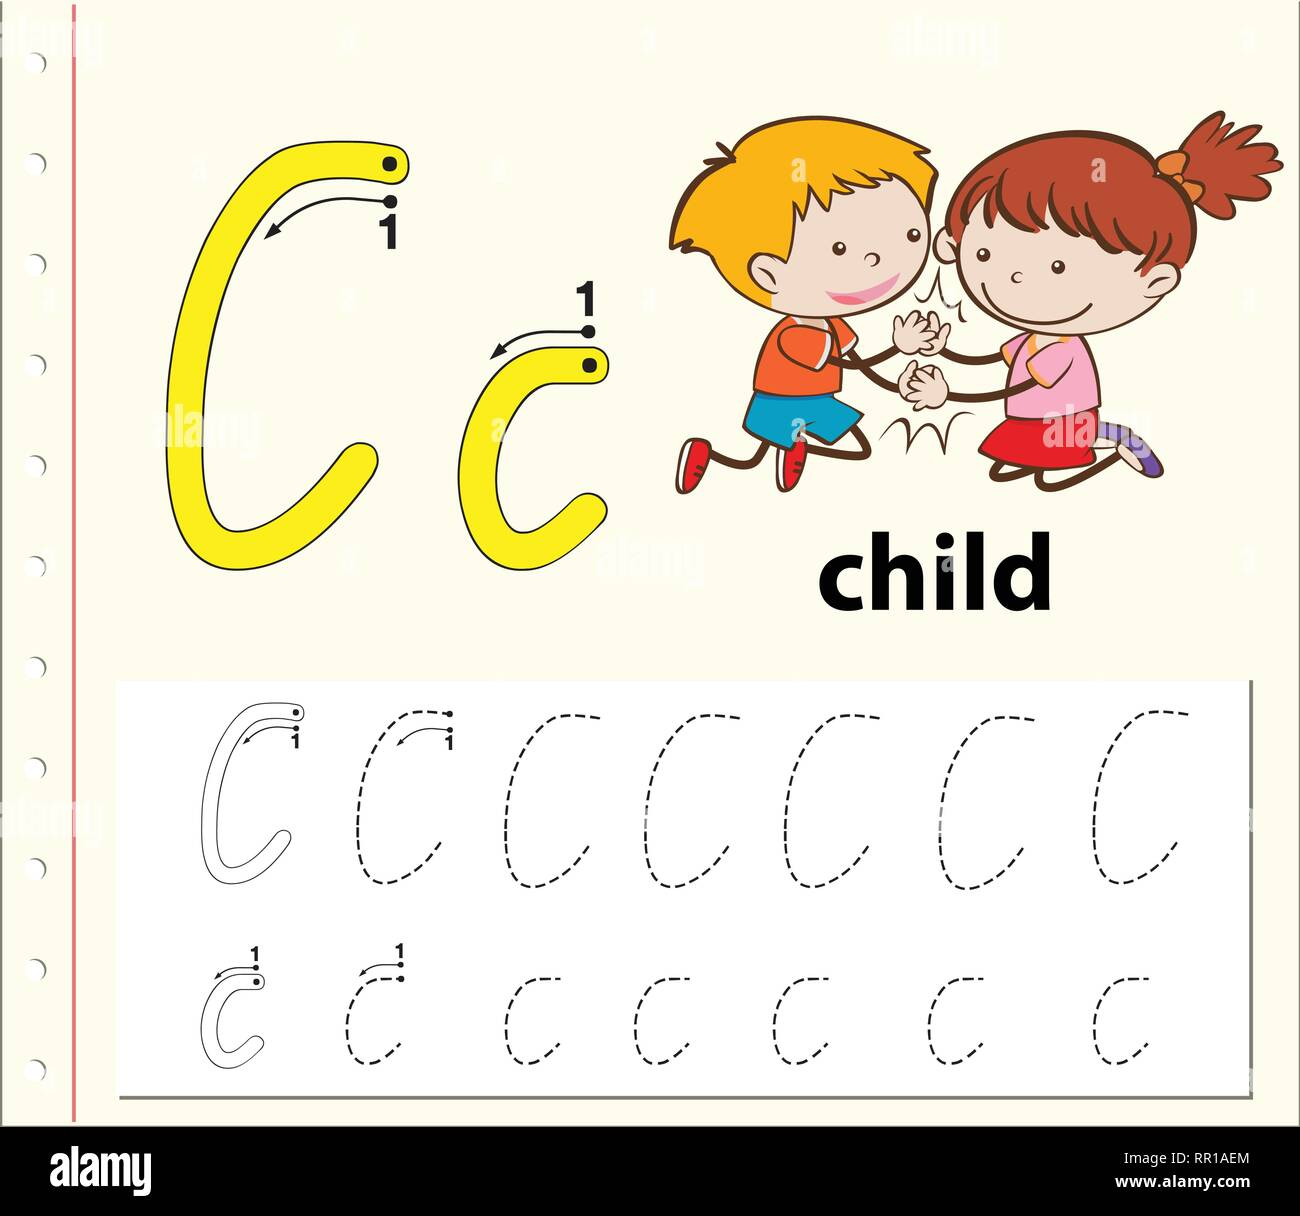 Letter C Tracing Alphabet Worksheets Illustration Stock